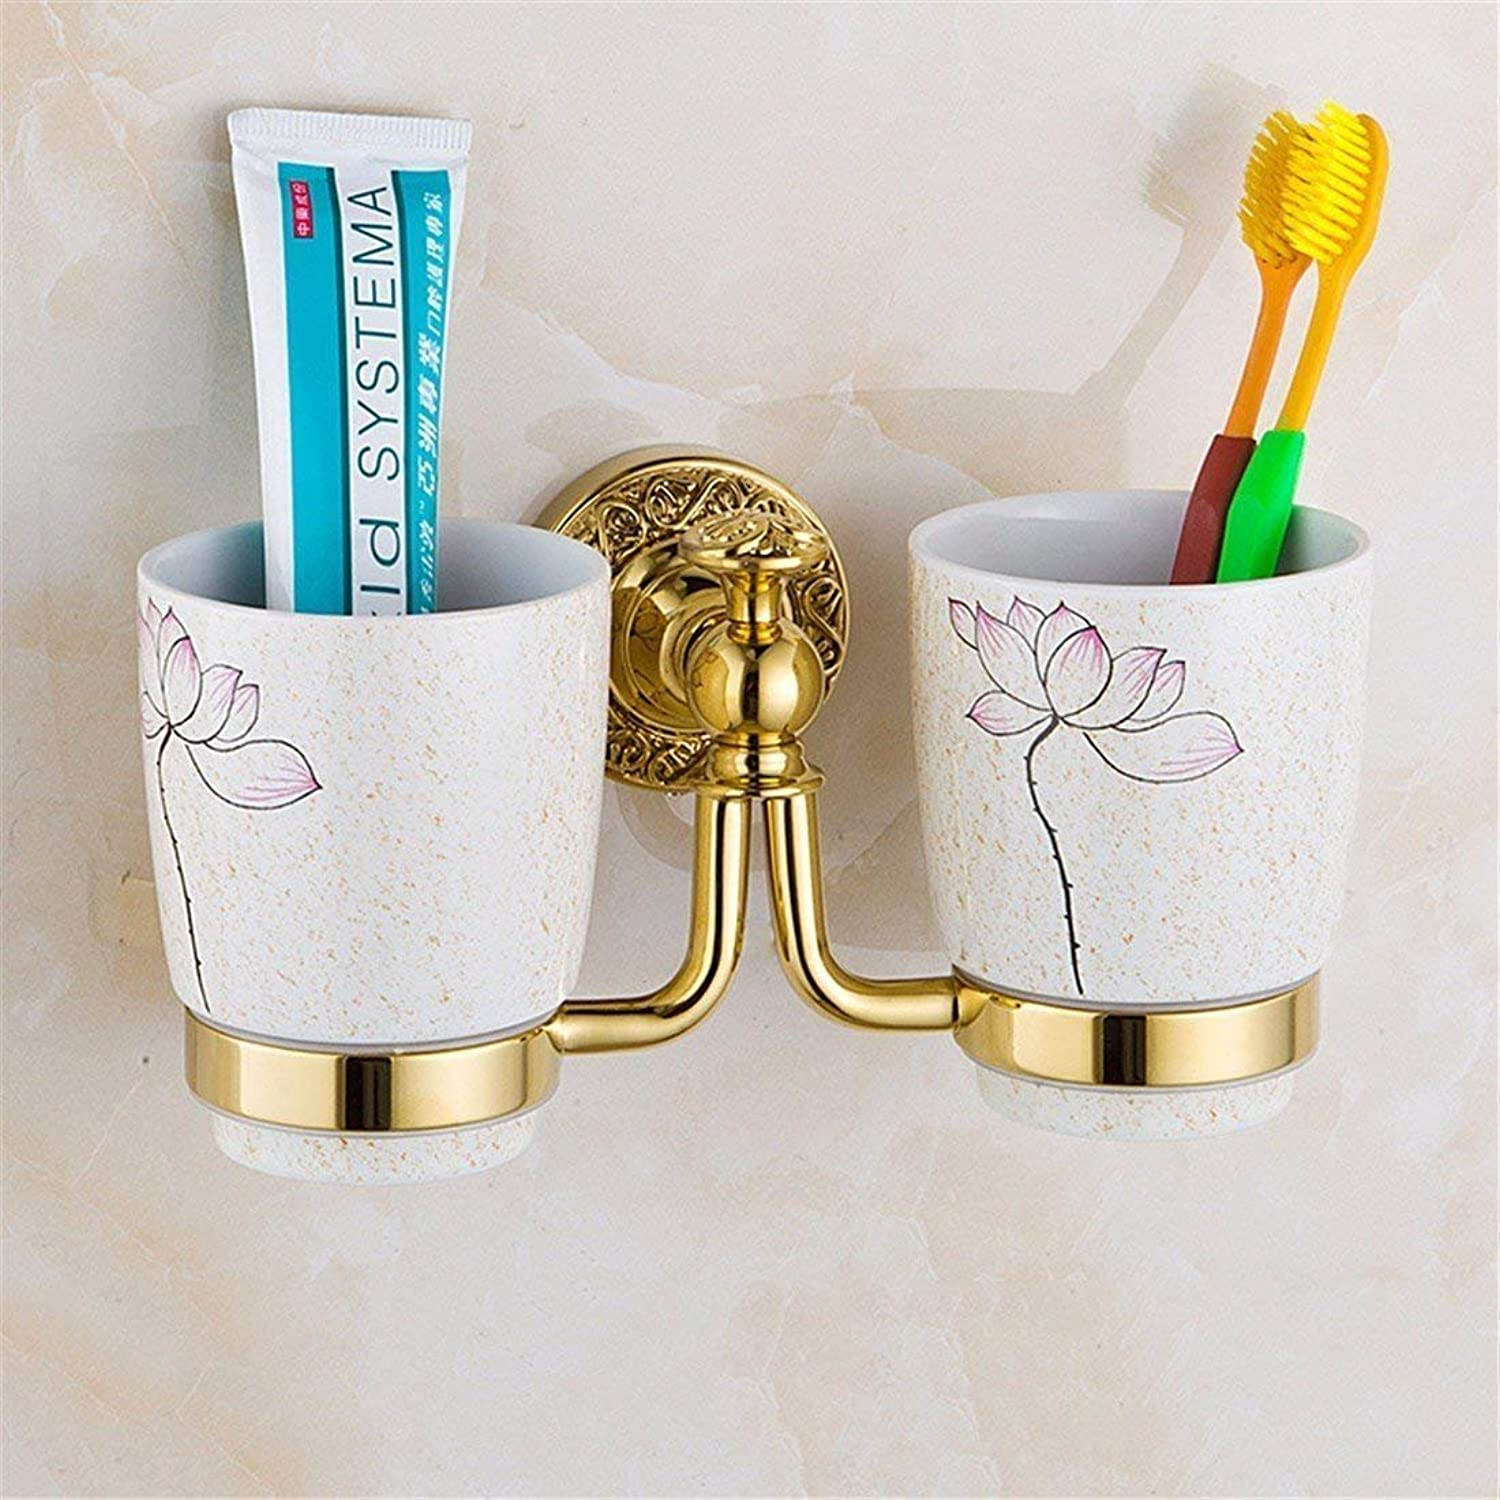 European Copper gold Carved Accessories of Bathroom is Committed to Using a Toilet Brush,Dual Rack Cup